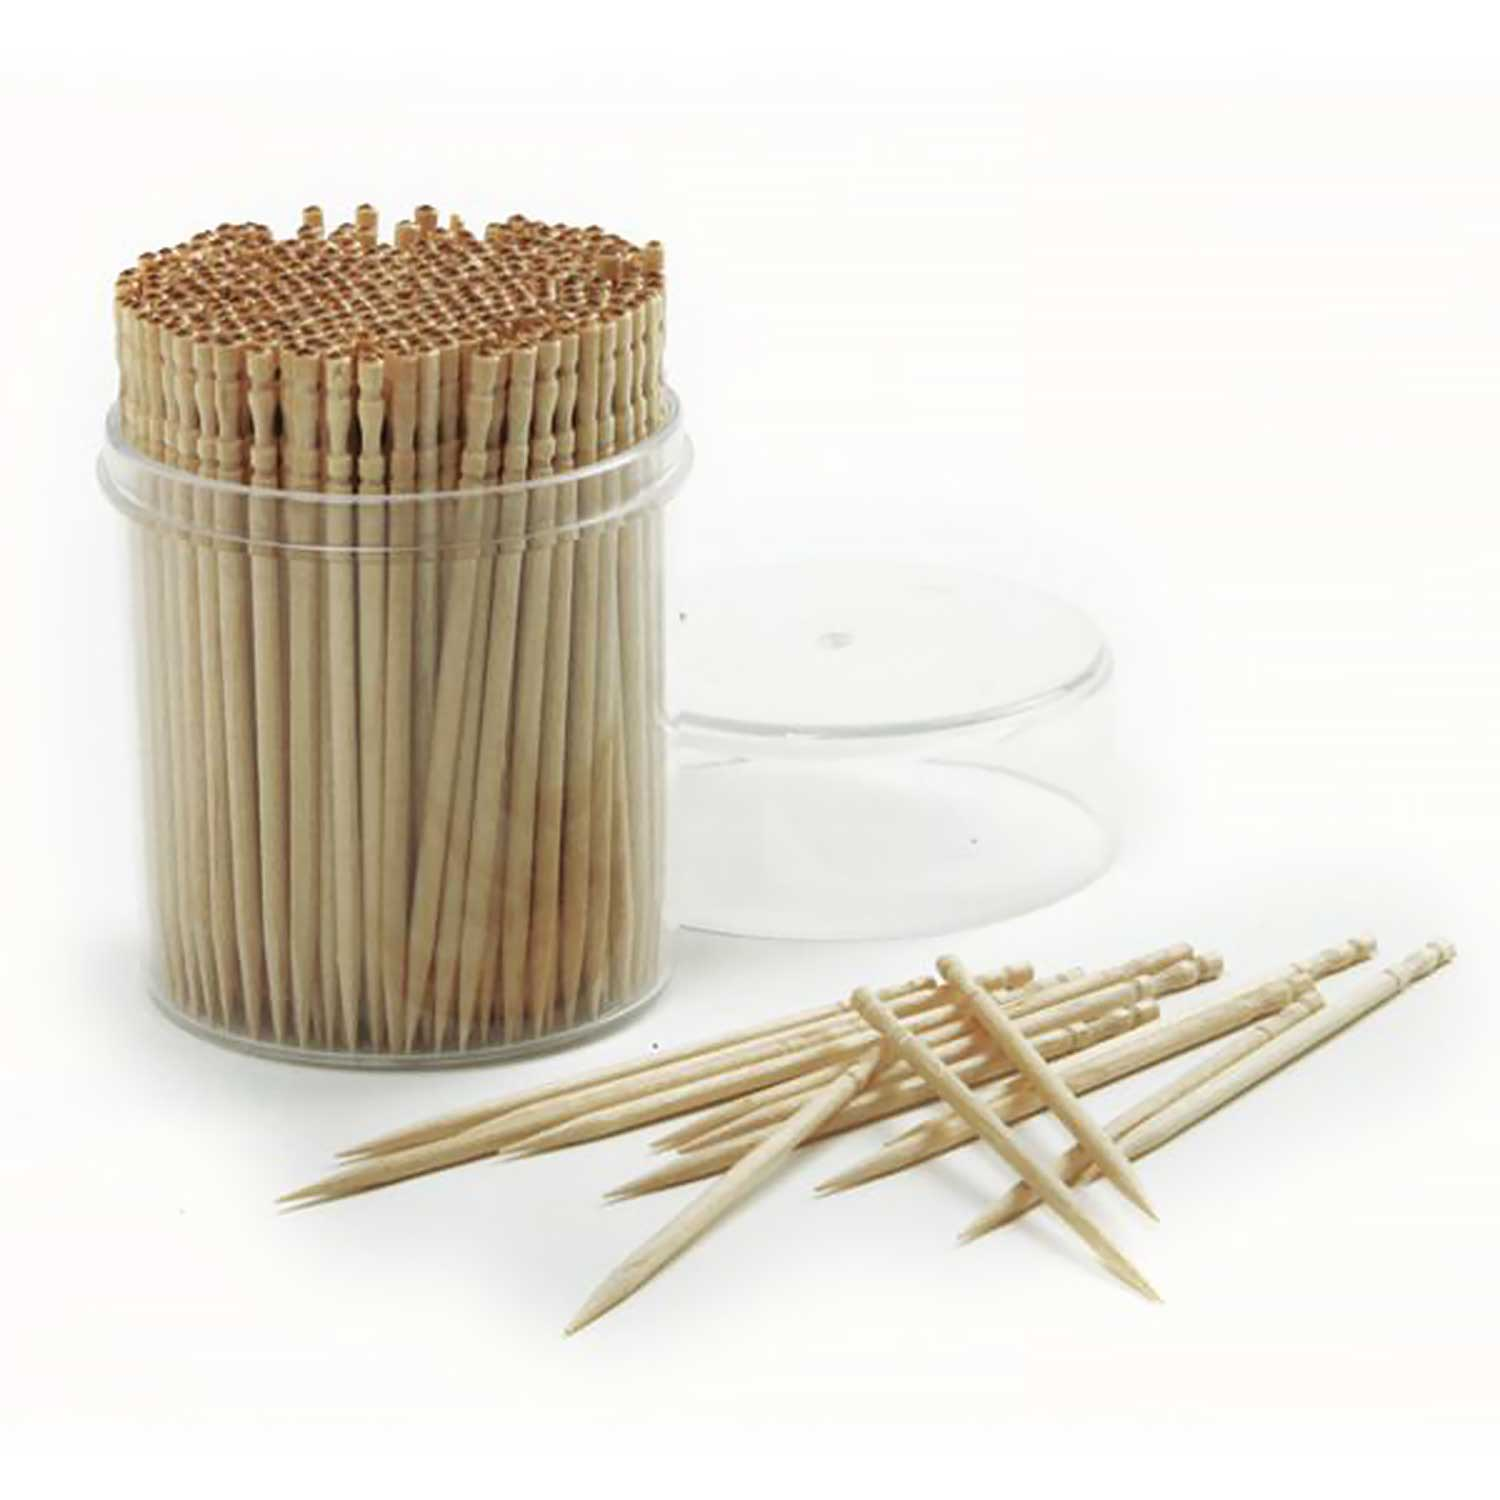 Ornate Wooden Toothpicks